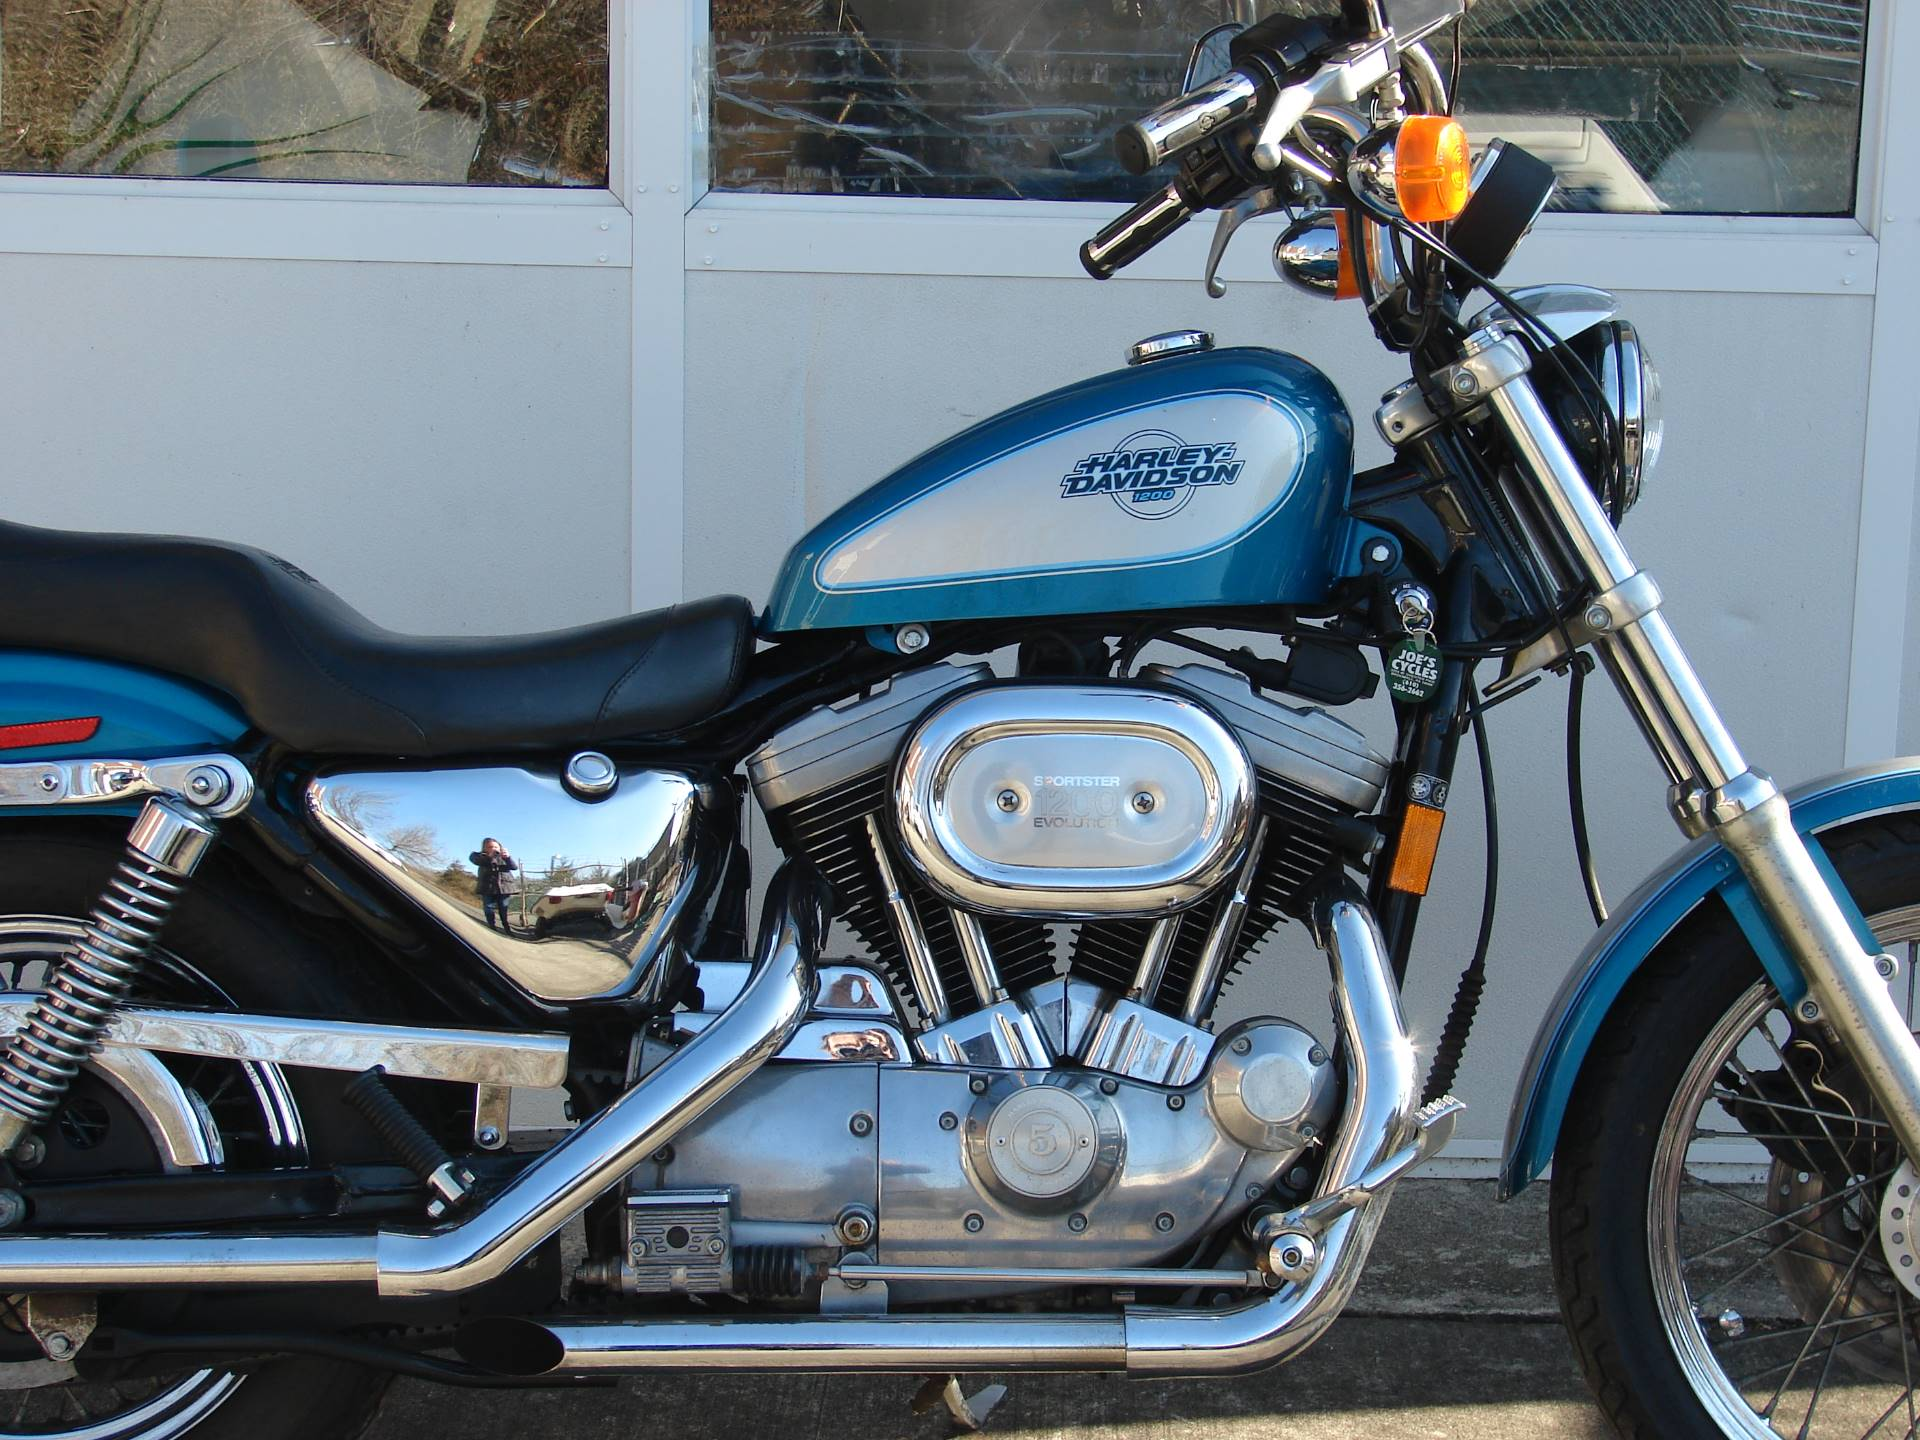 1995 Harley-Davidson 1200 Sportster  (Teal Blue and Silver) in Williamstown, New Jersey - Photo 2